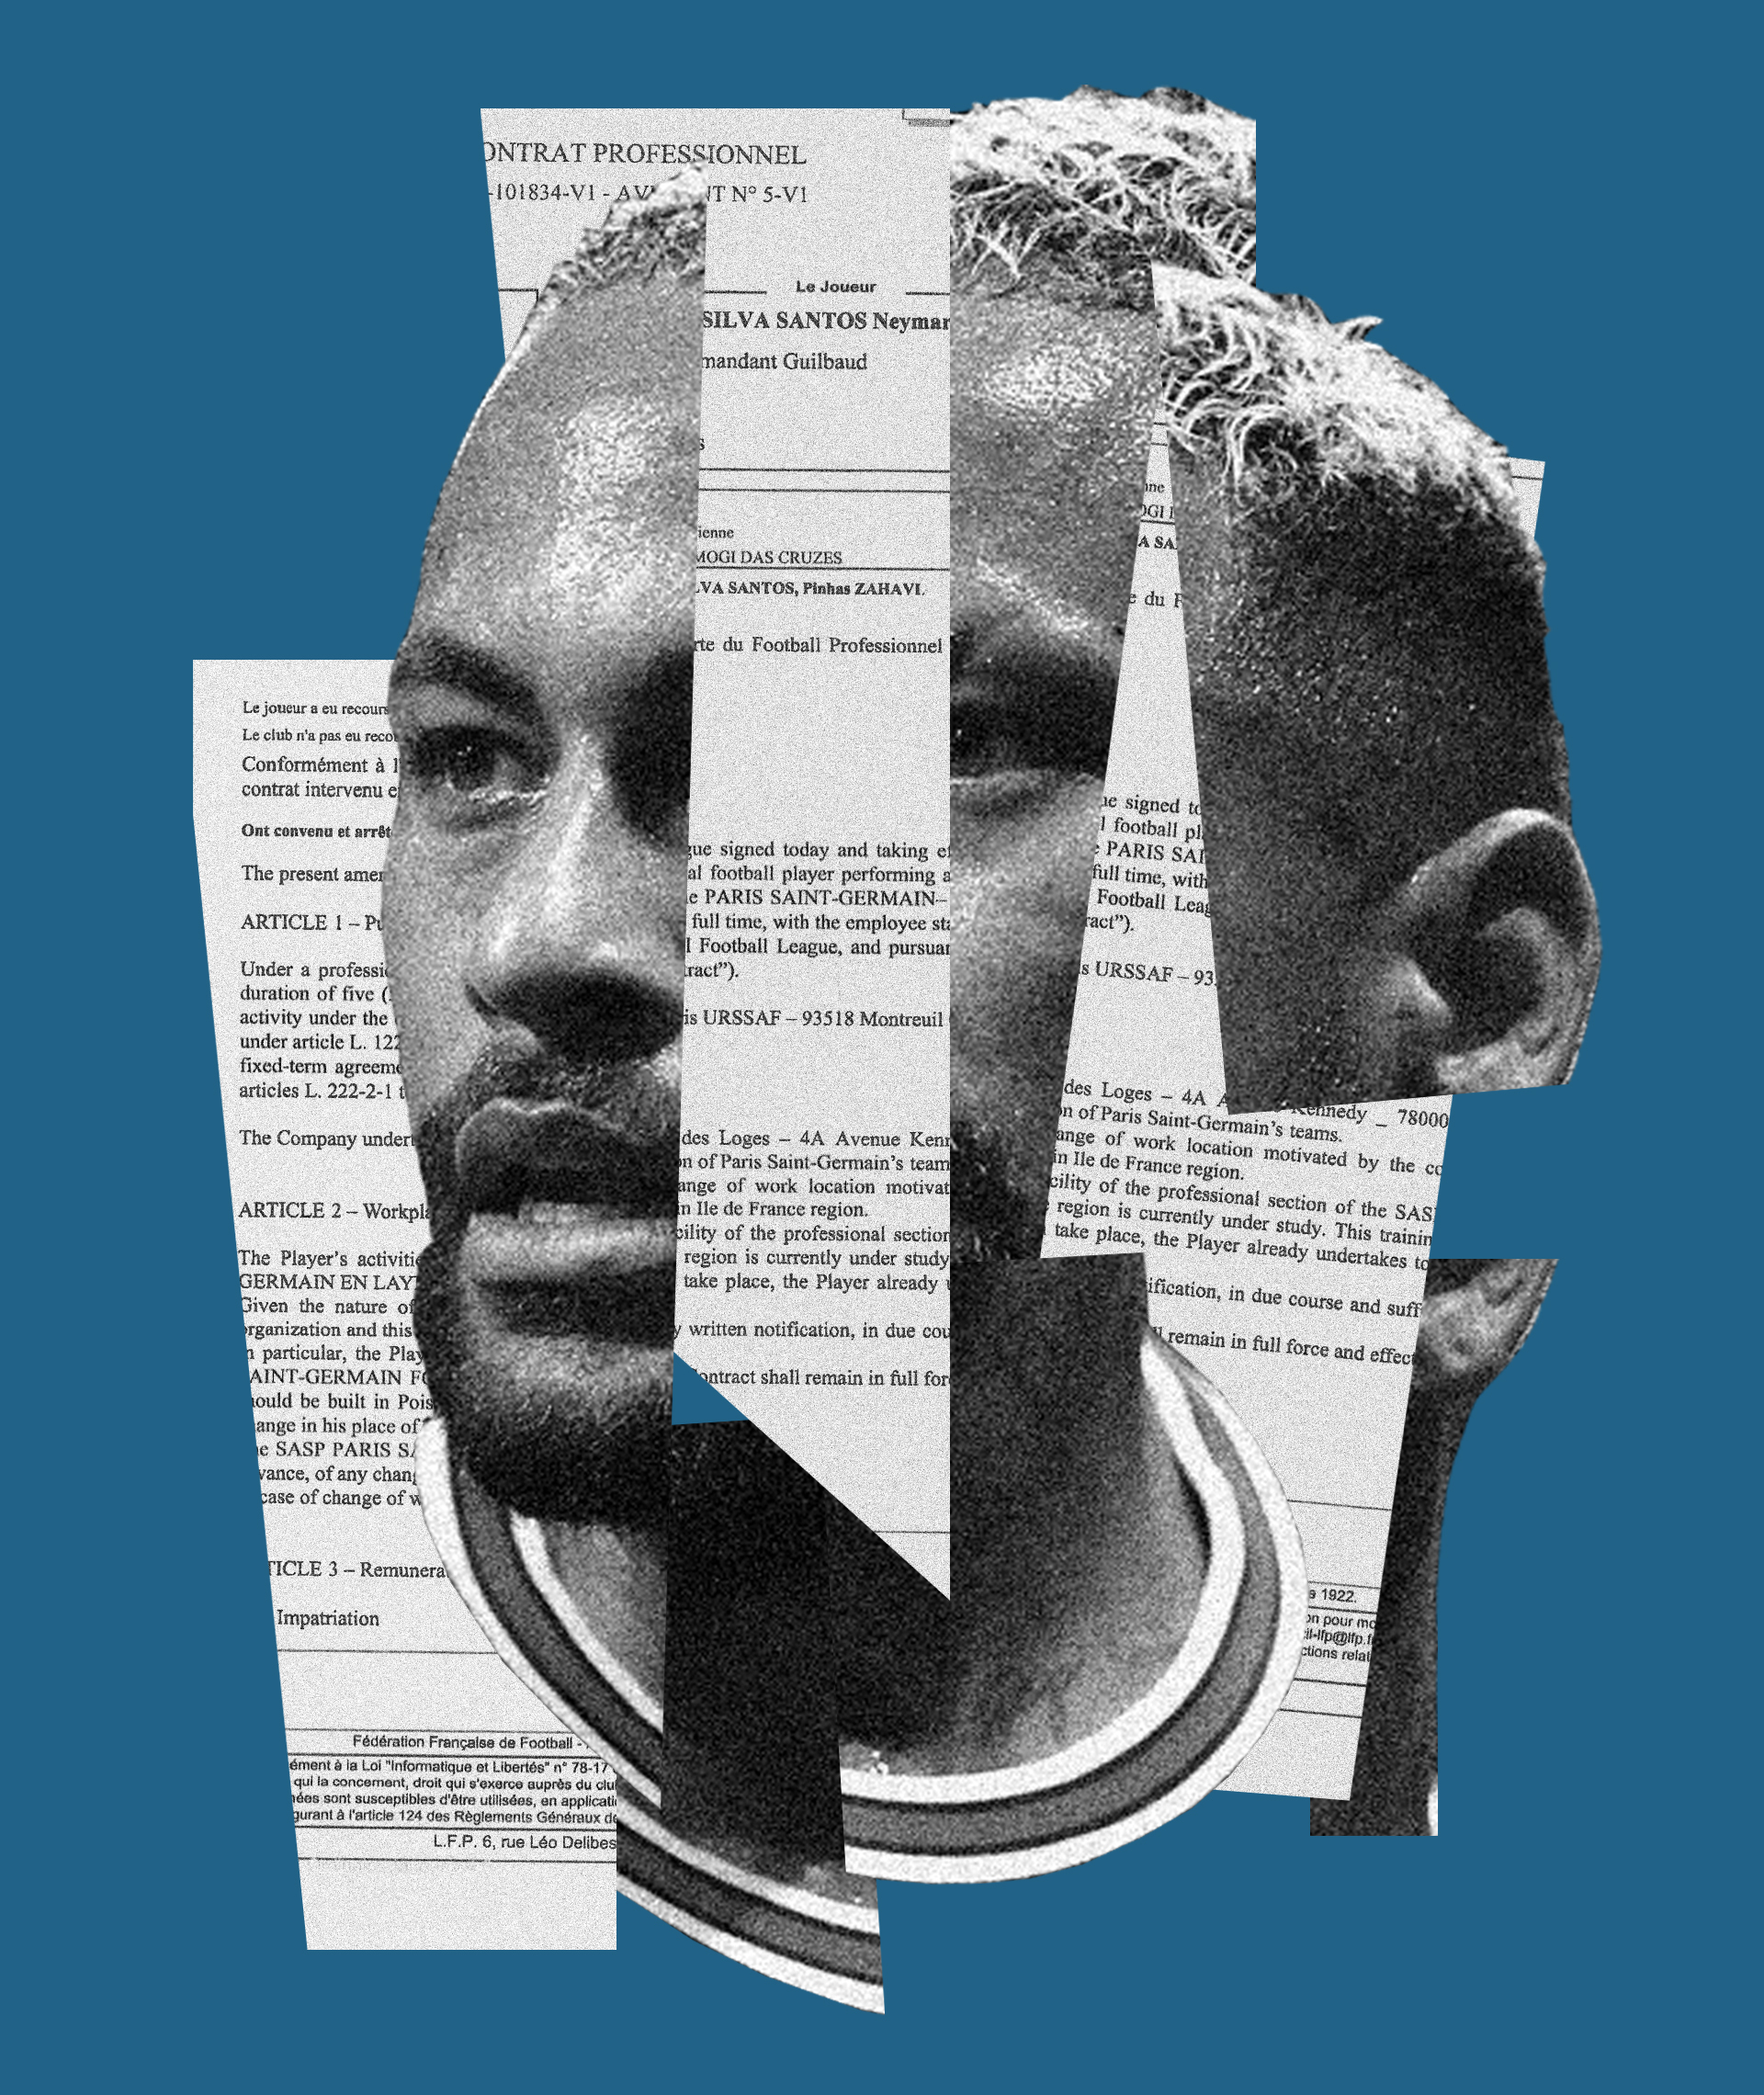 Neymar: The contract that shattered football's economic balance